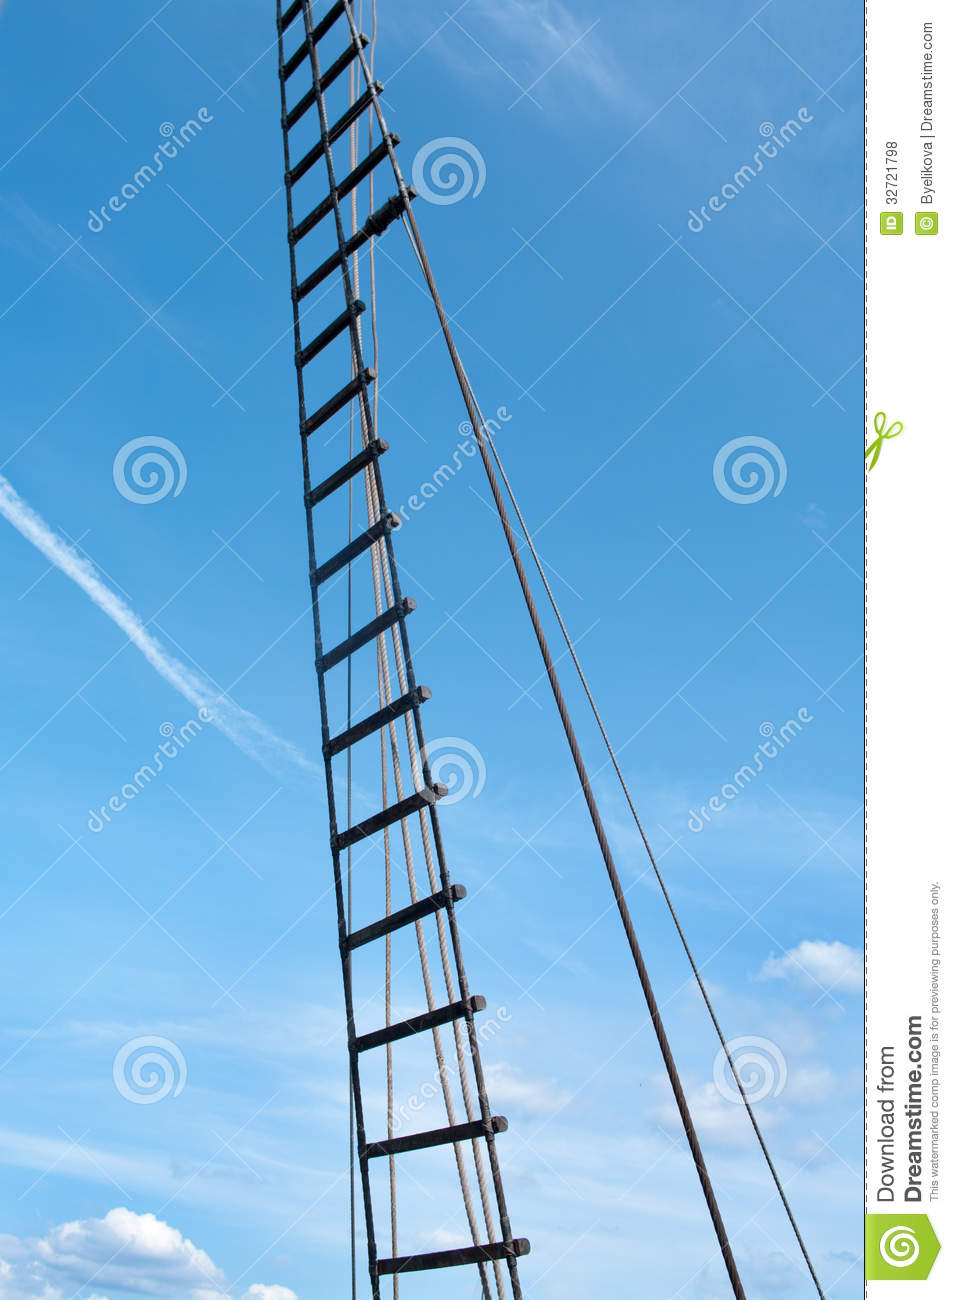 Rope ladder of the ship stock photo. Image of navy, tall - 32721798 for Rope Ladder Ship  110yll